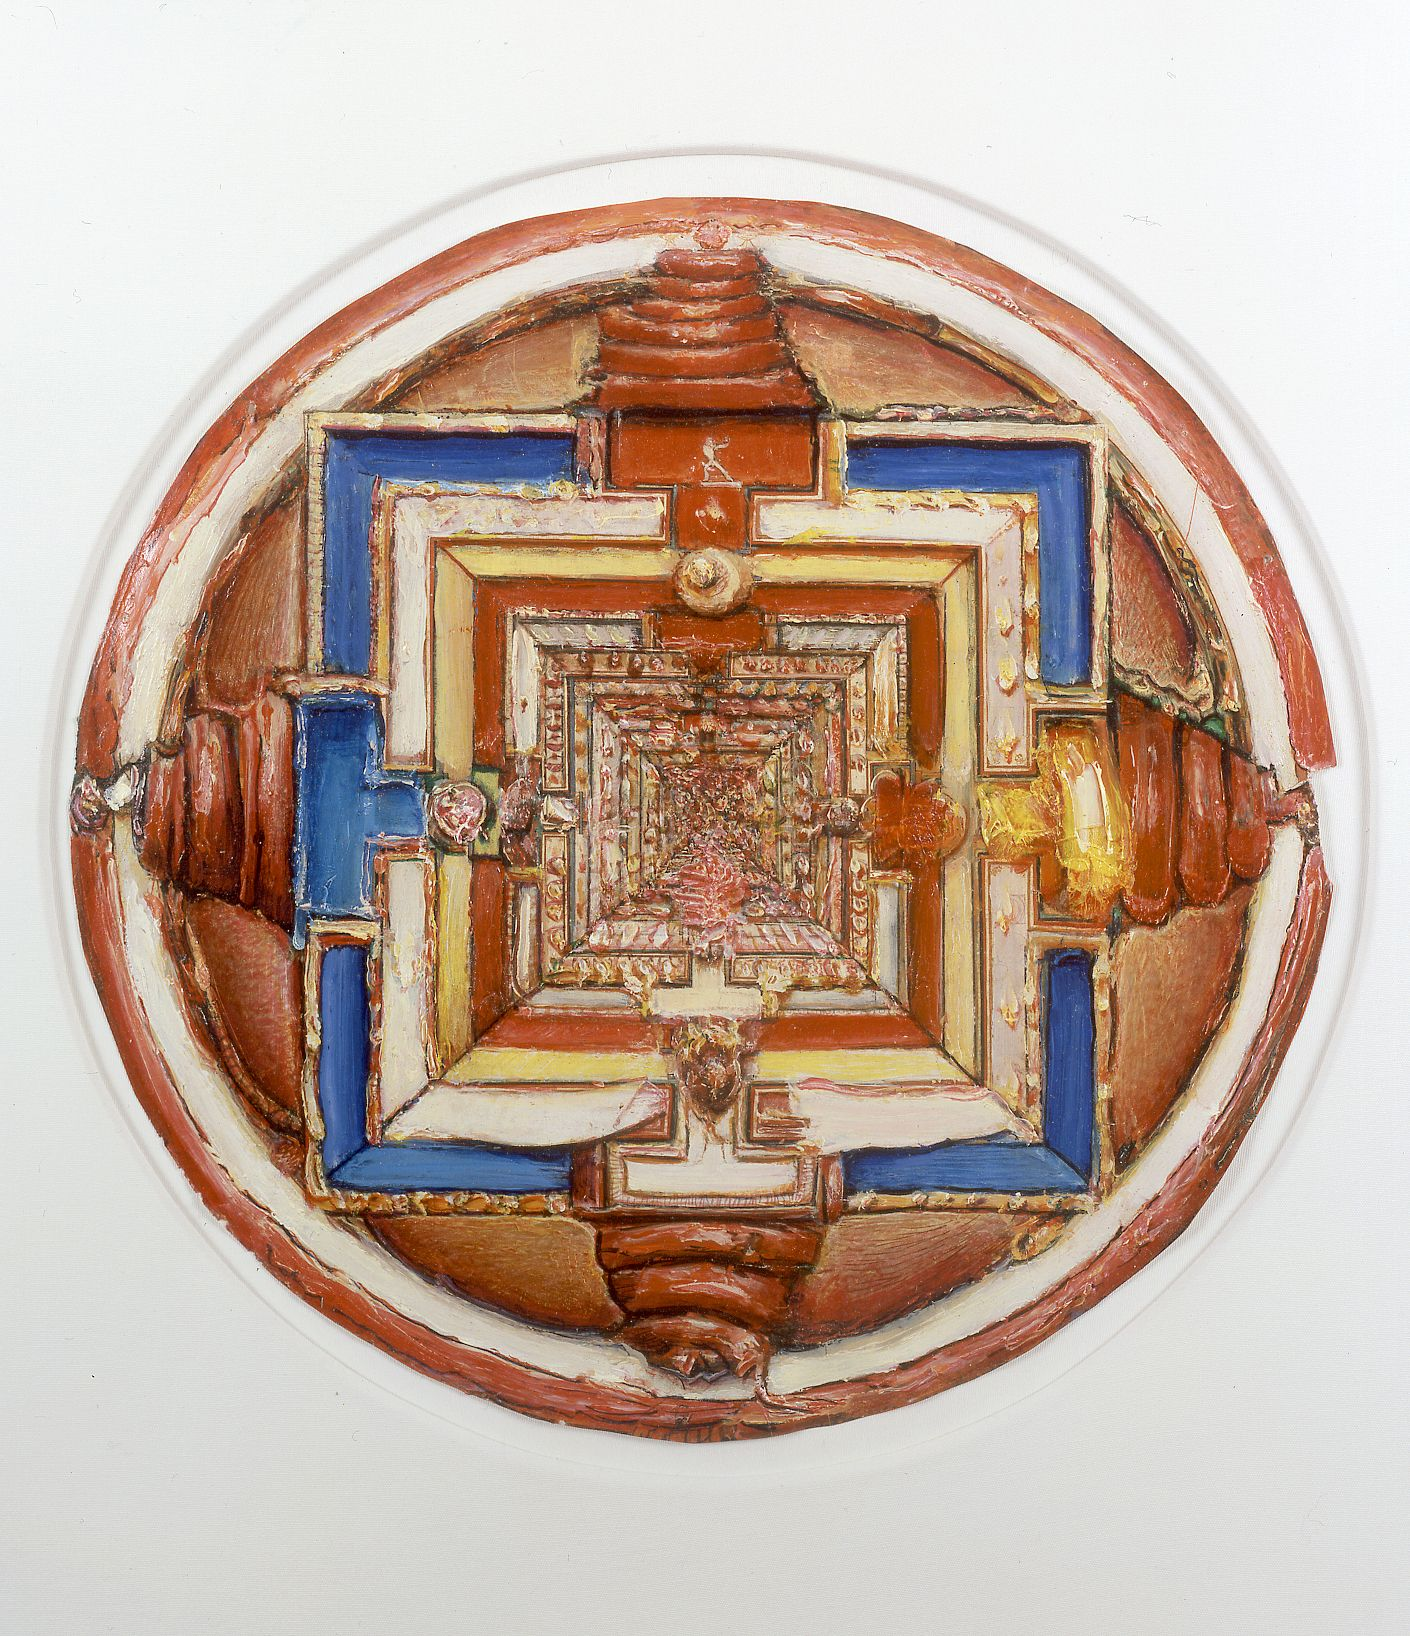 gregory gillespie, Small Mandala, 1996, oil on paper, 12 1/2 diameter